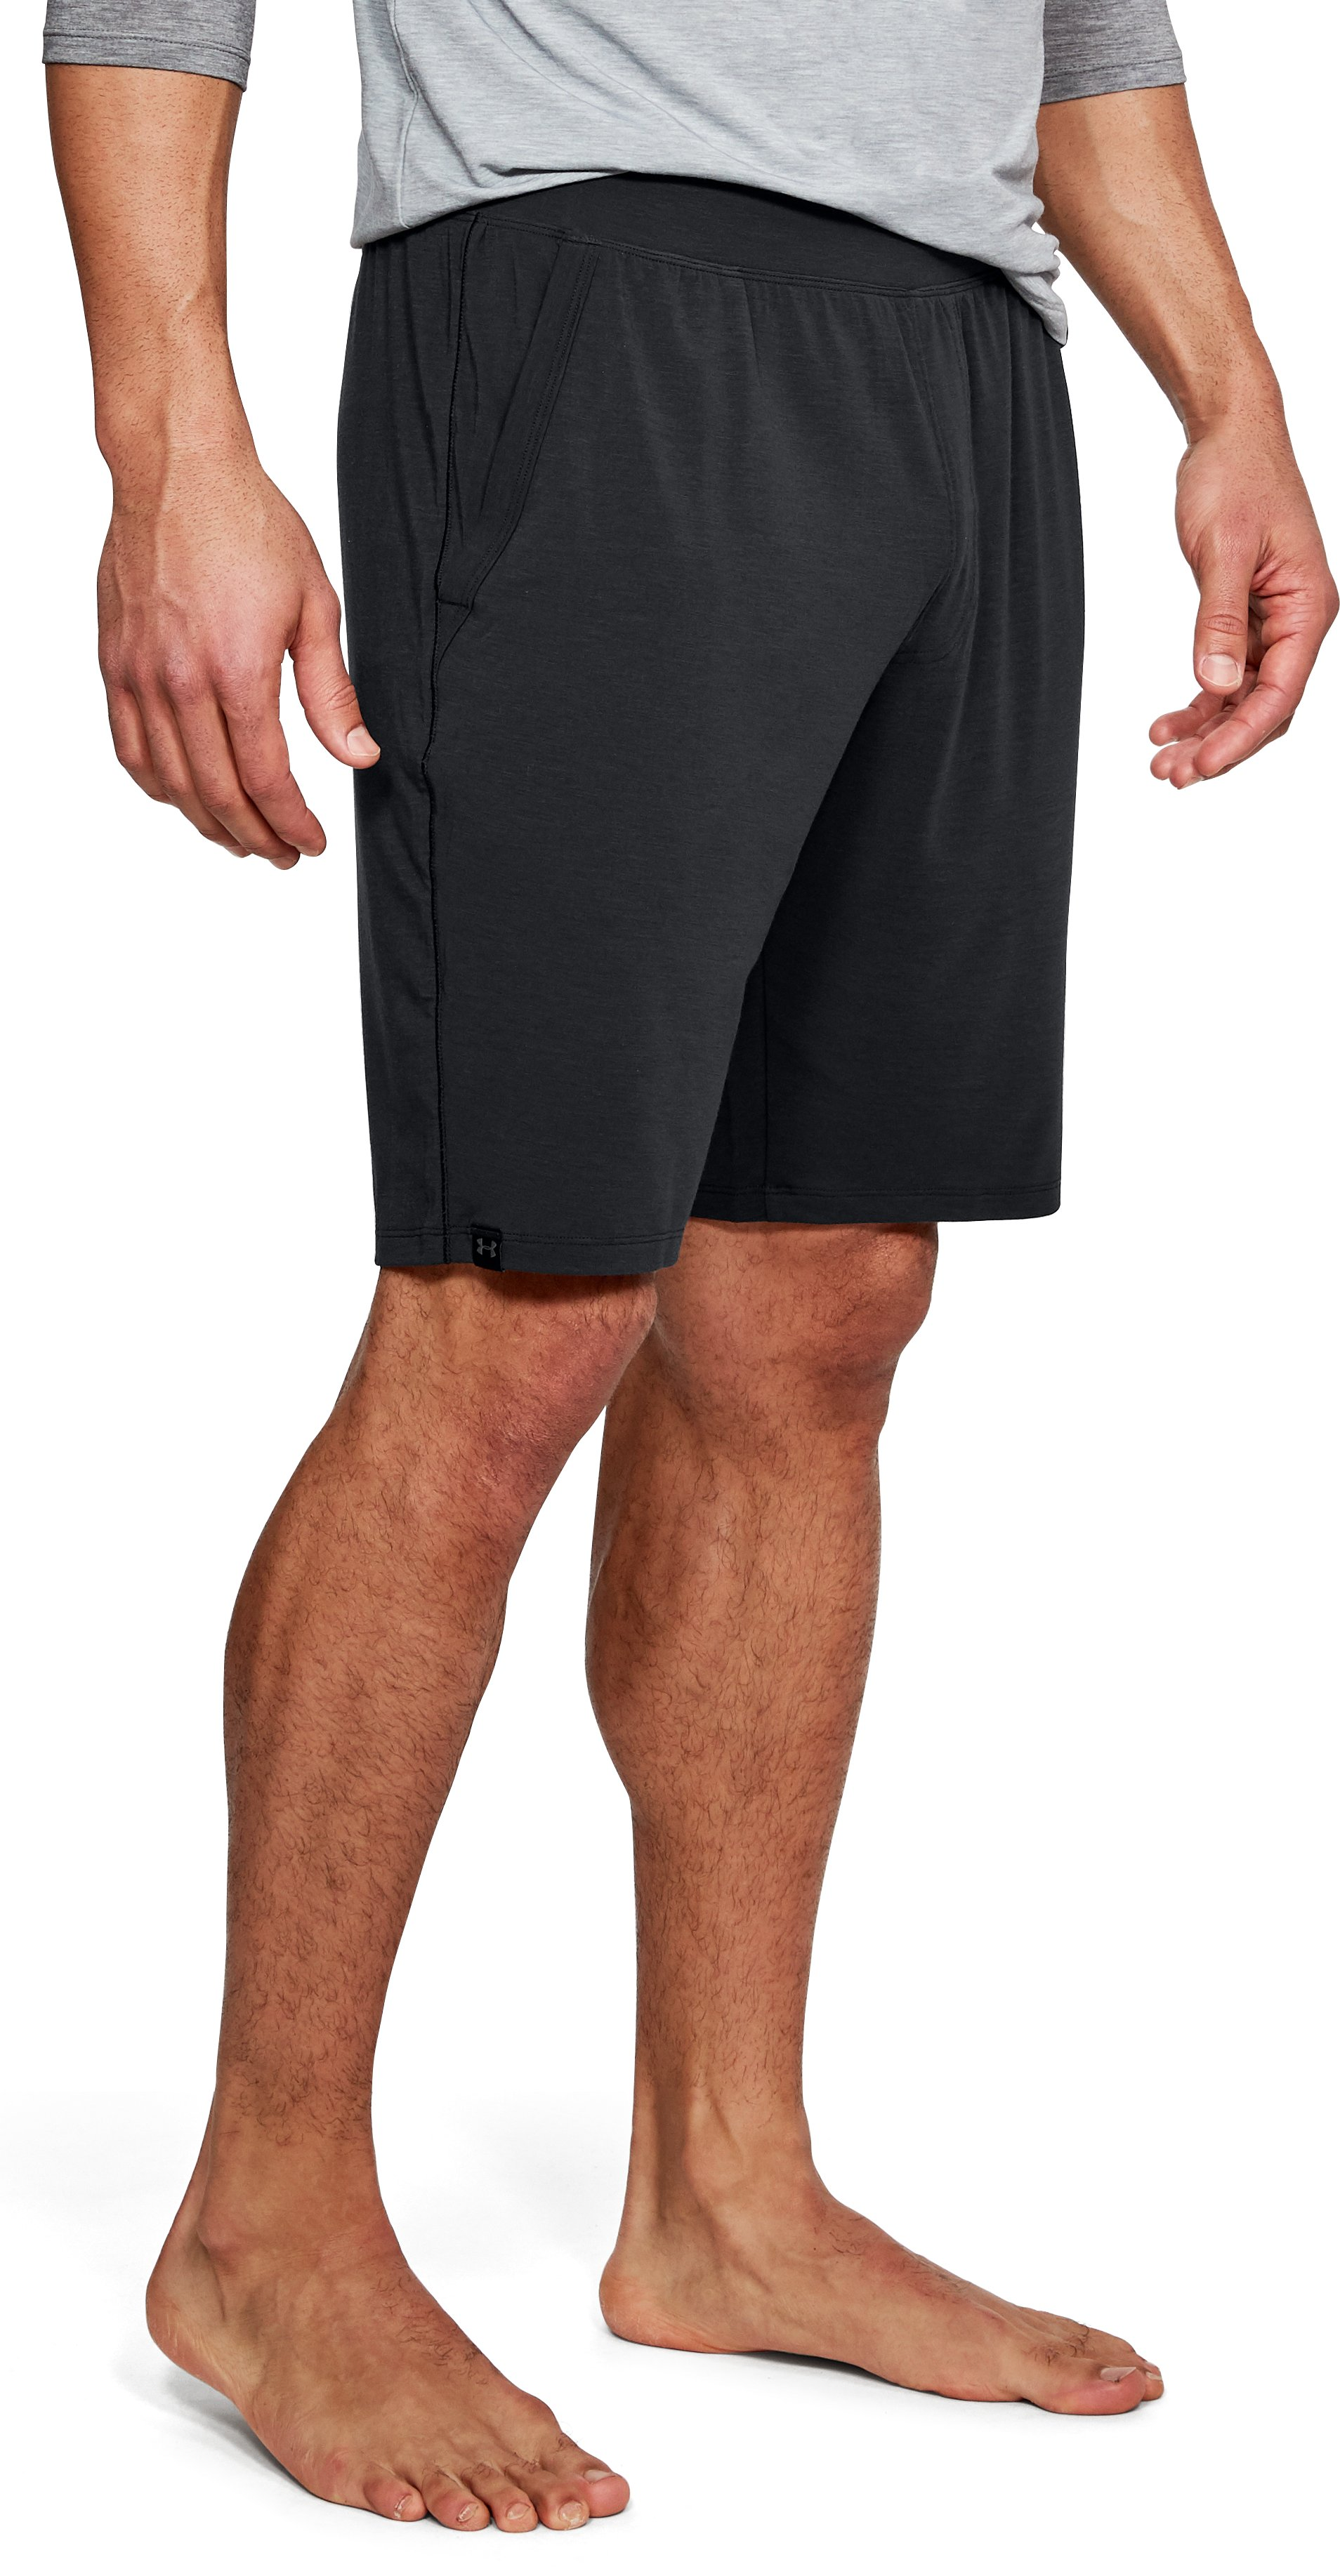 Men's Athlete Recovery Sleepwear Shorts, Black